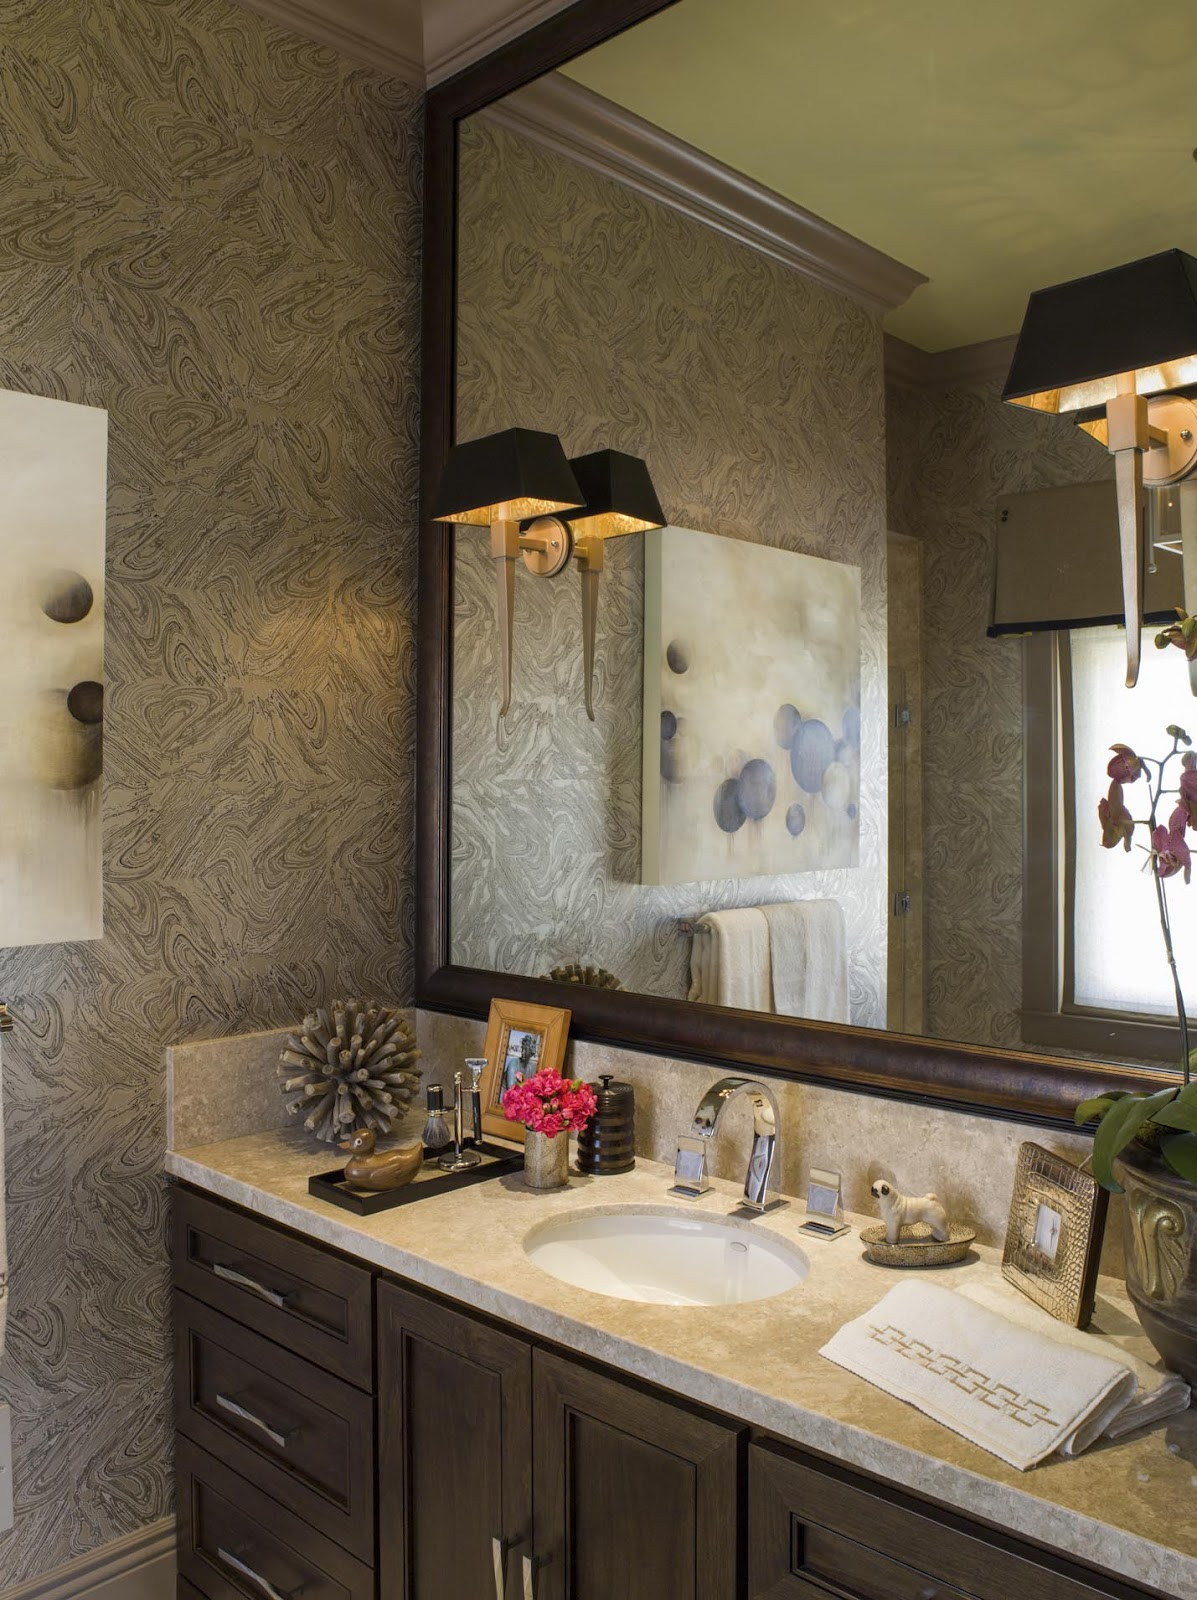 Bathroom wallpaper ideas bathroom wallpaper designs for Bathroom decorating ideas wallpaper